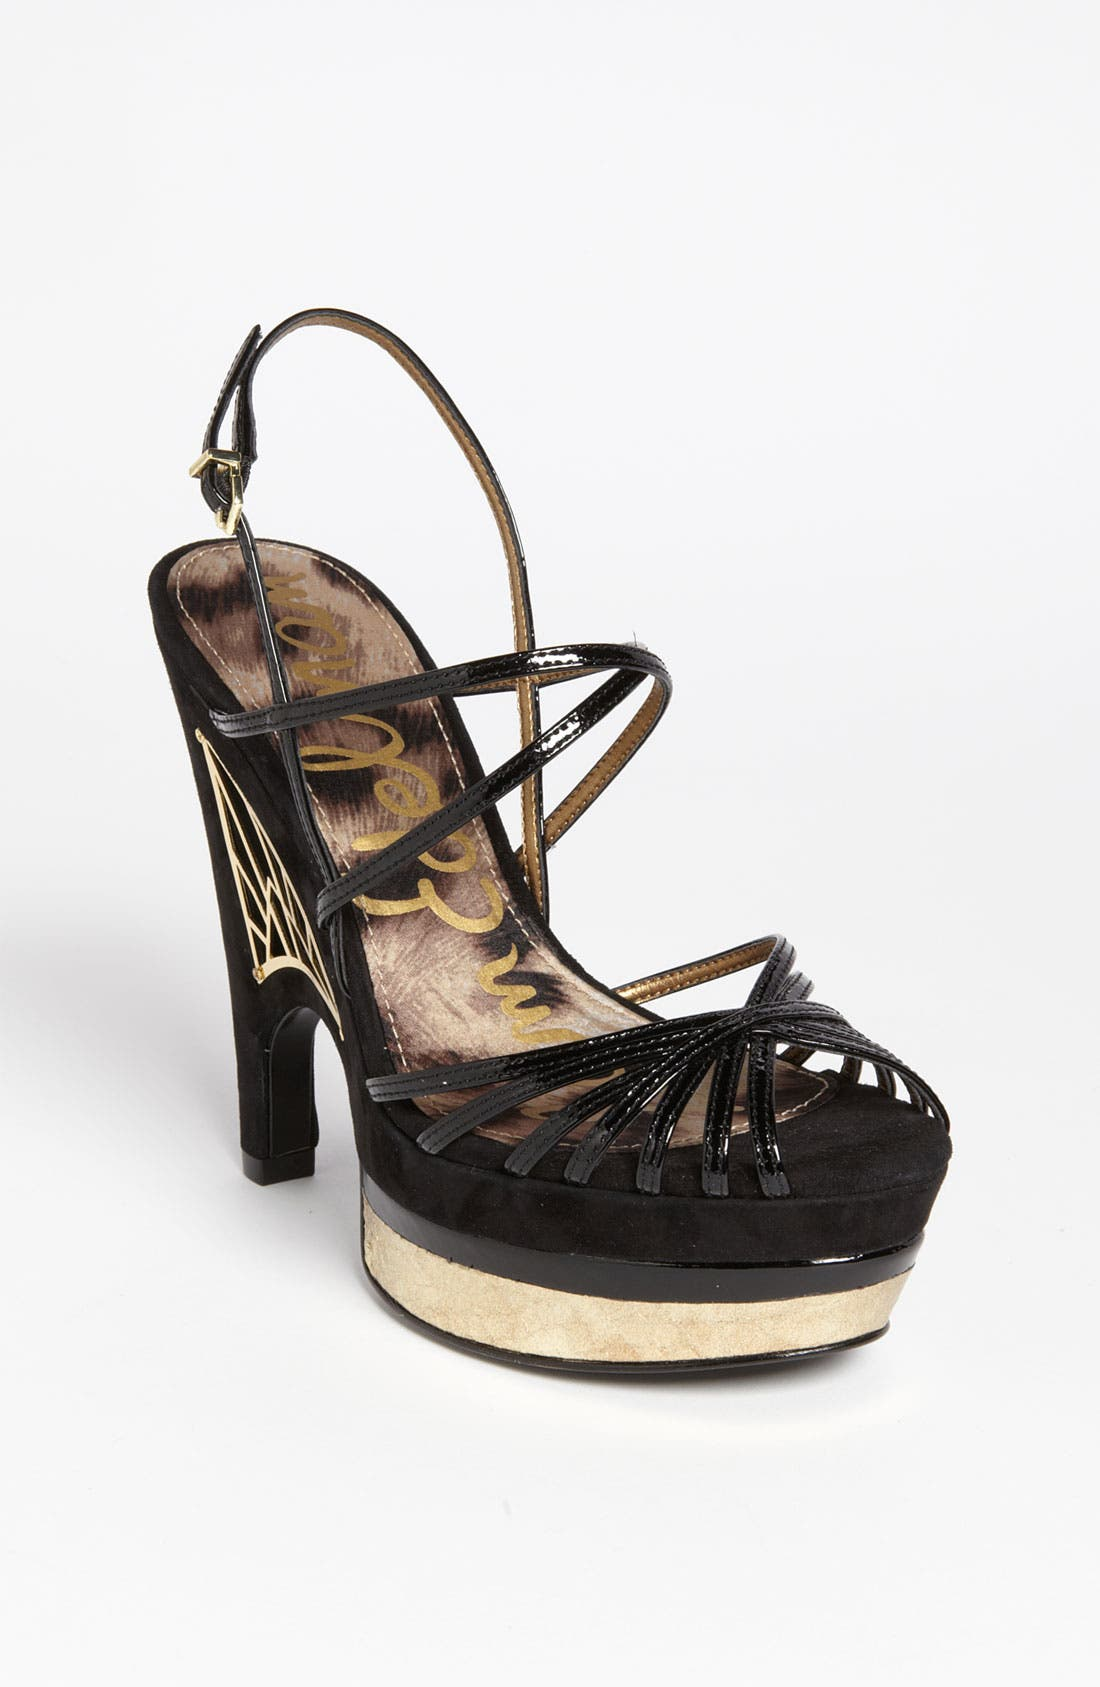 Alternate Image 1 Selected - Sam Edelman 'Tillie' Sandal